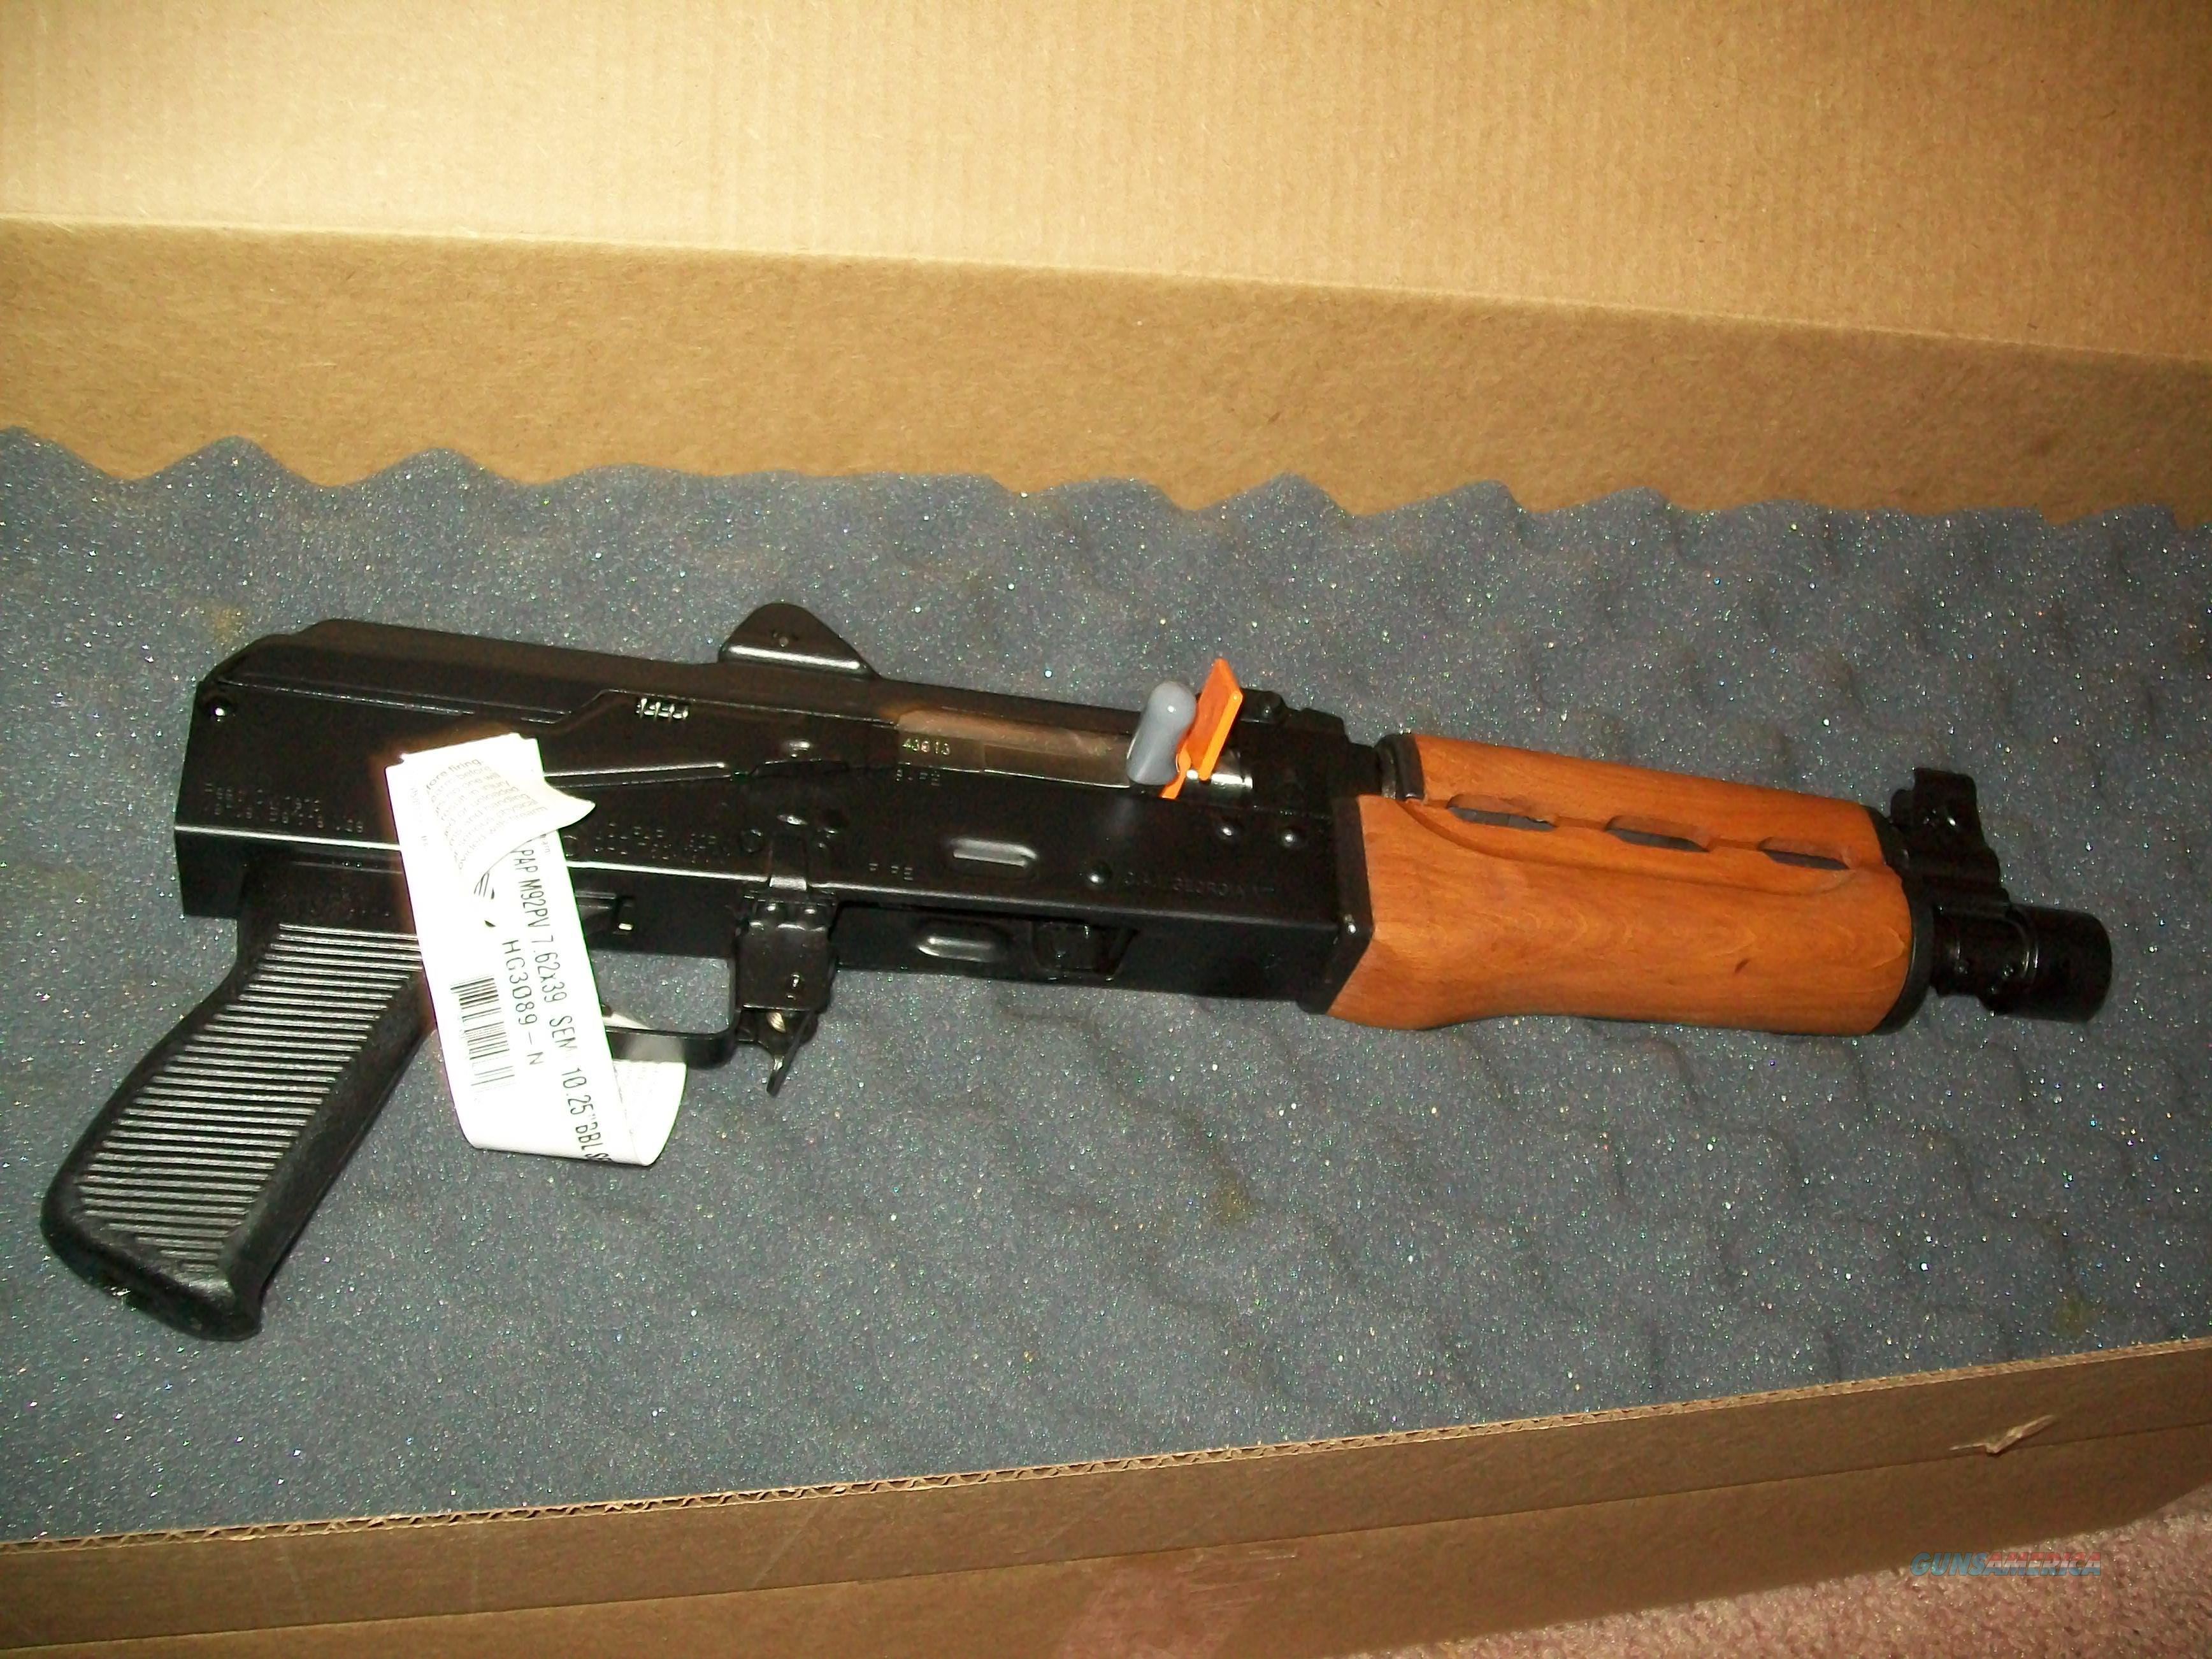 NIB PAP M92 AK47 PISTOL  Guns > Rifles > AK-47 Rifles (and copies) > Folding Stock